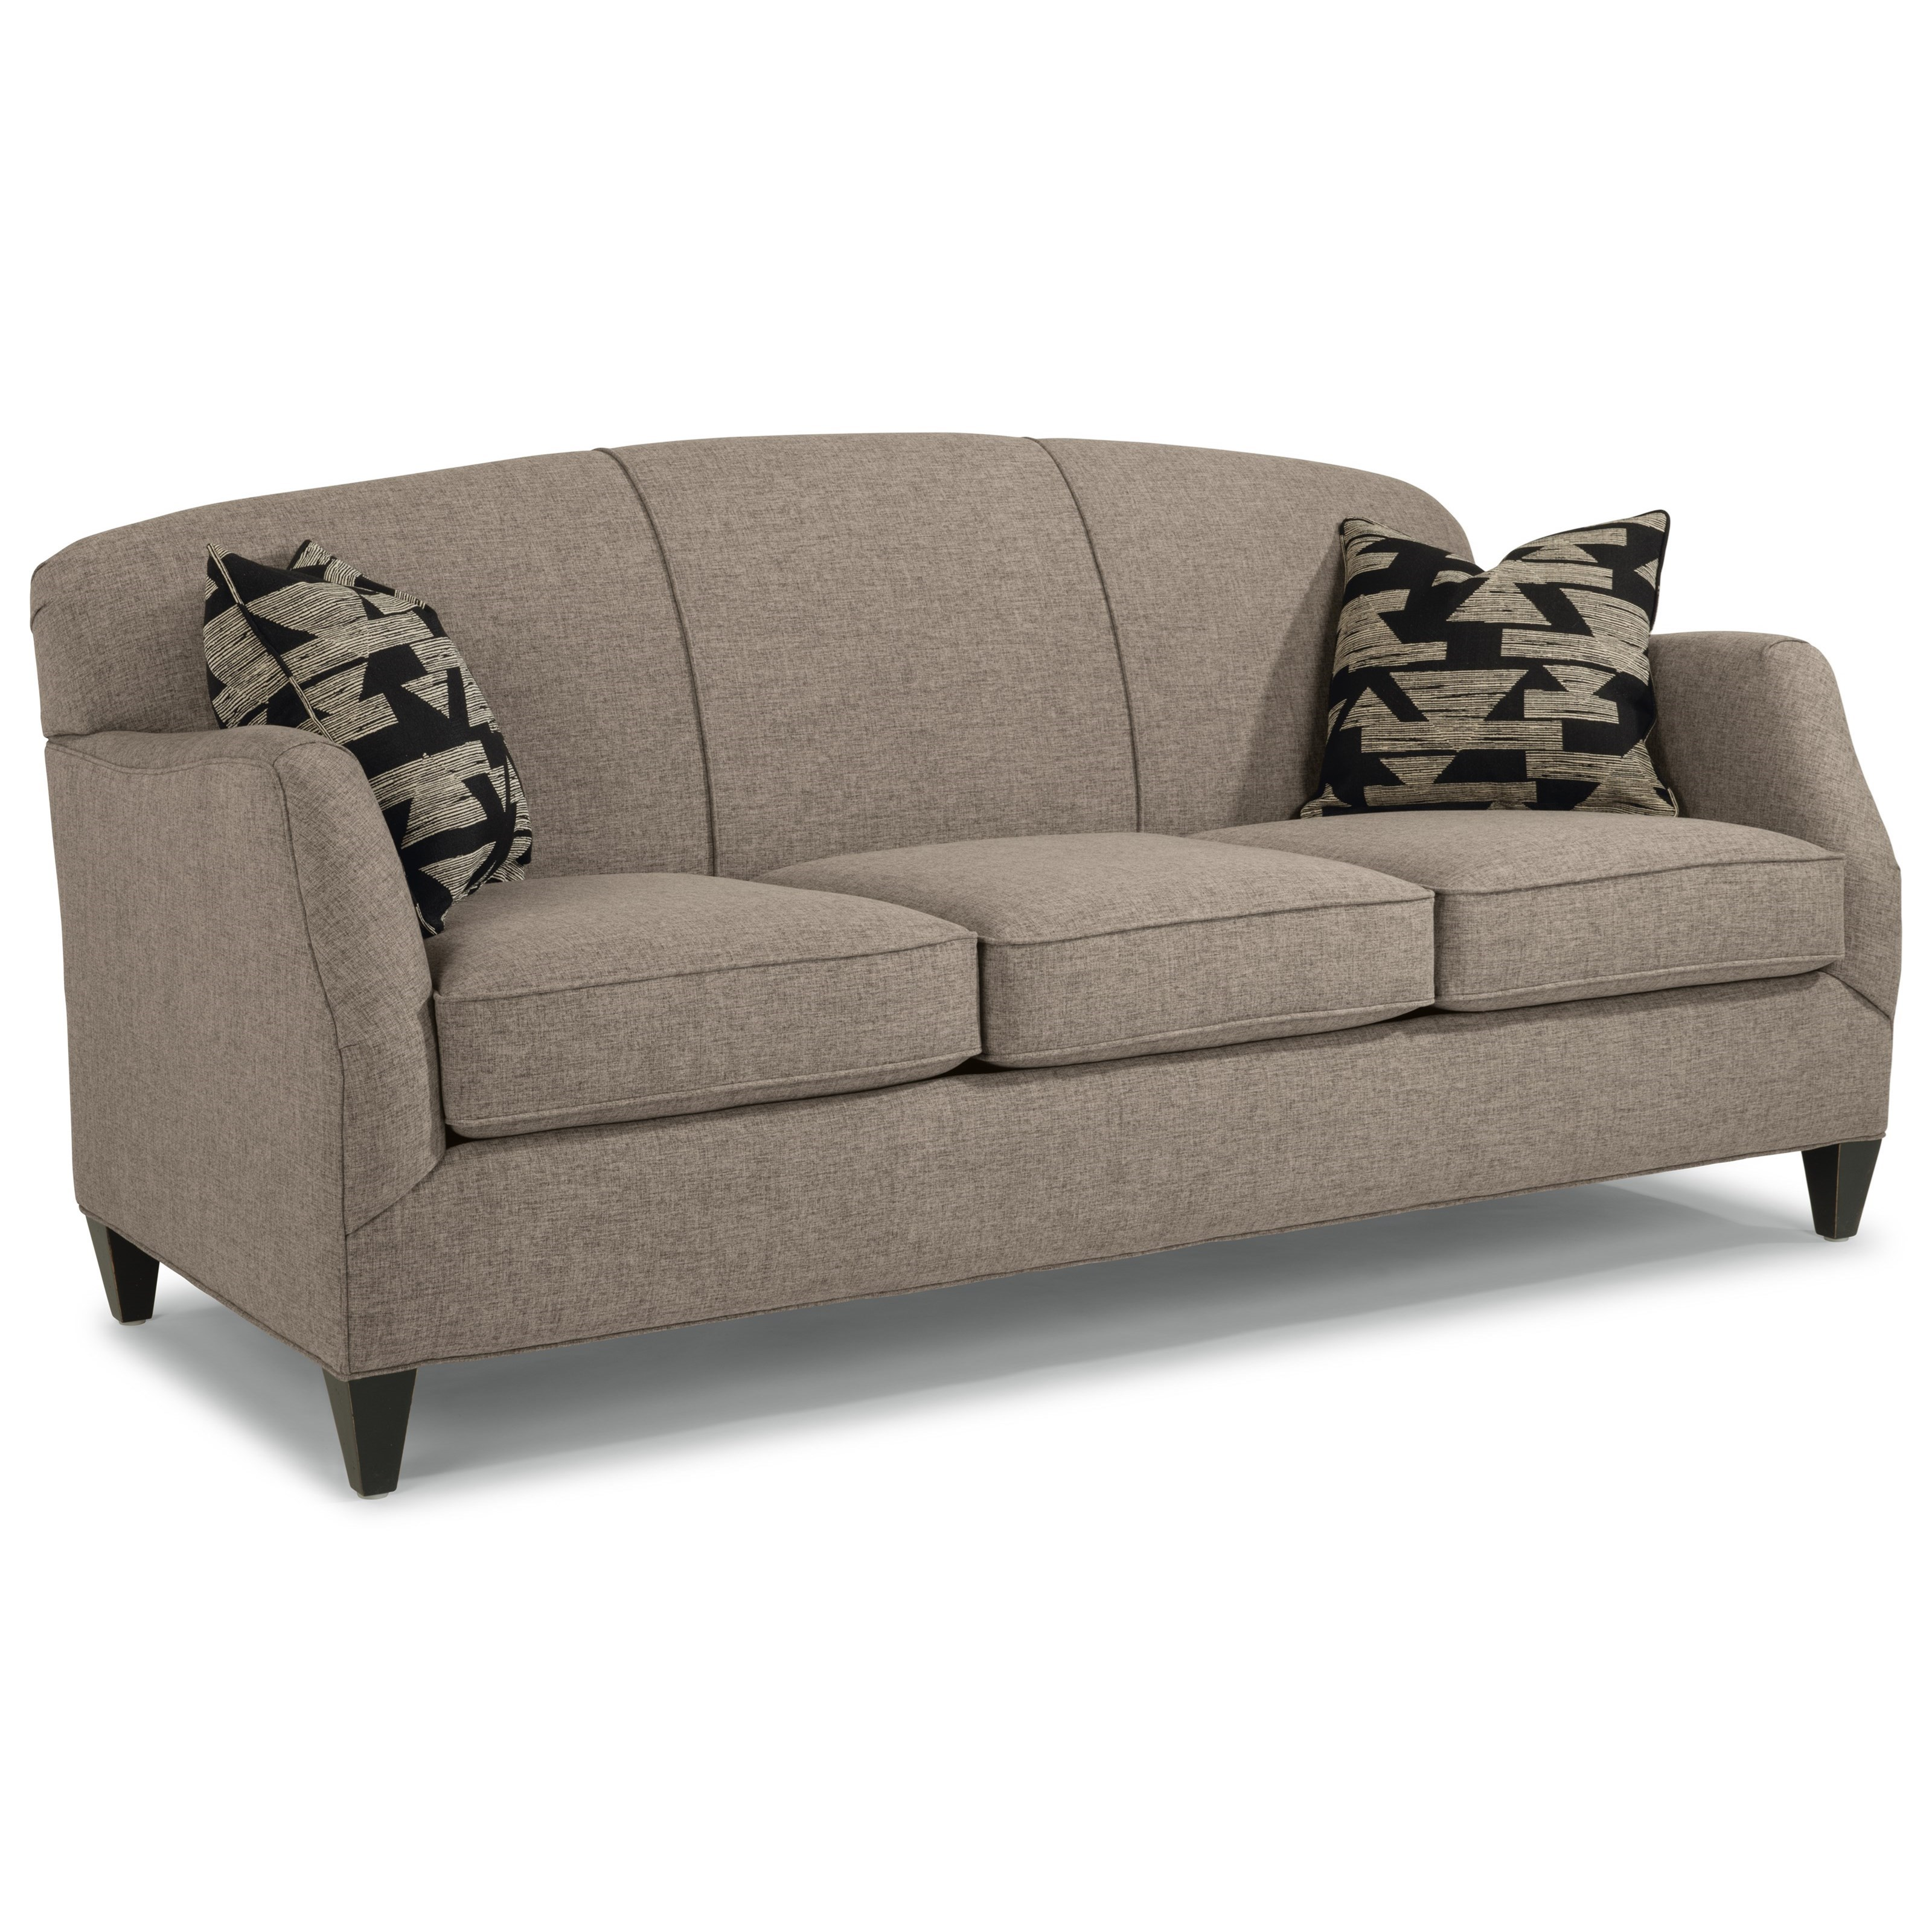 Jasmine Contemporary Sofa with Tapered Legs by Flexsteel at Wayside  Furniture